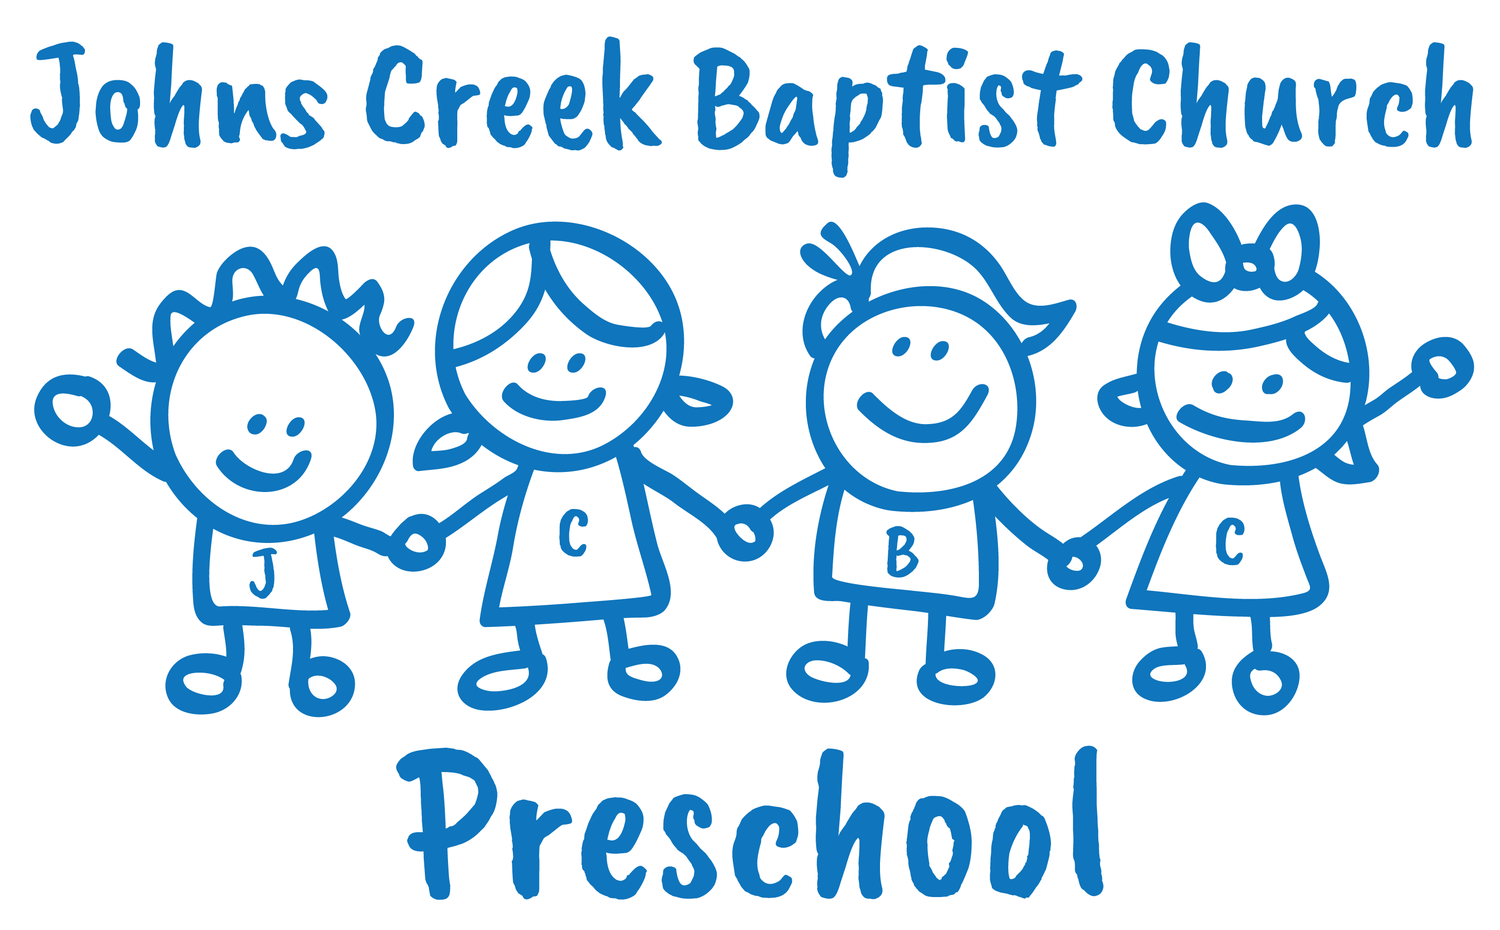 Johns Creek Baptist Church Preschool